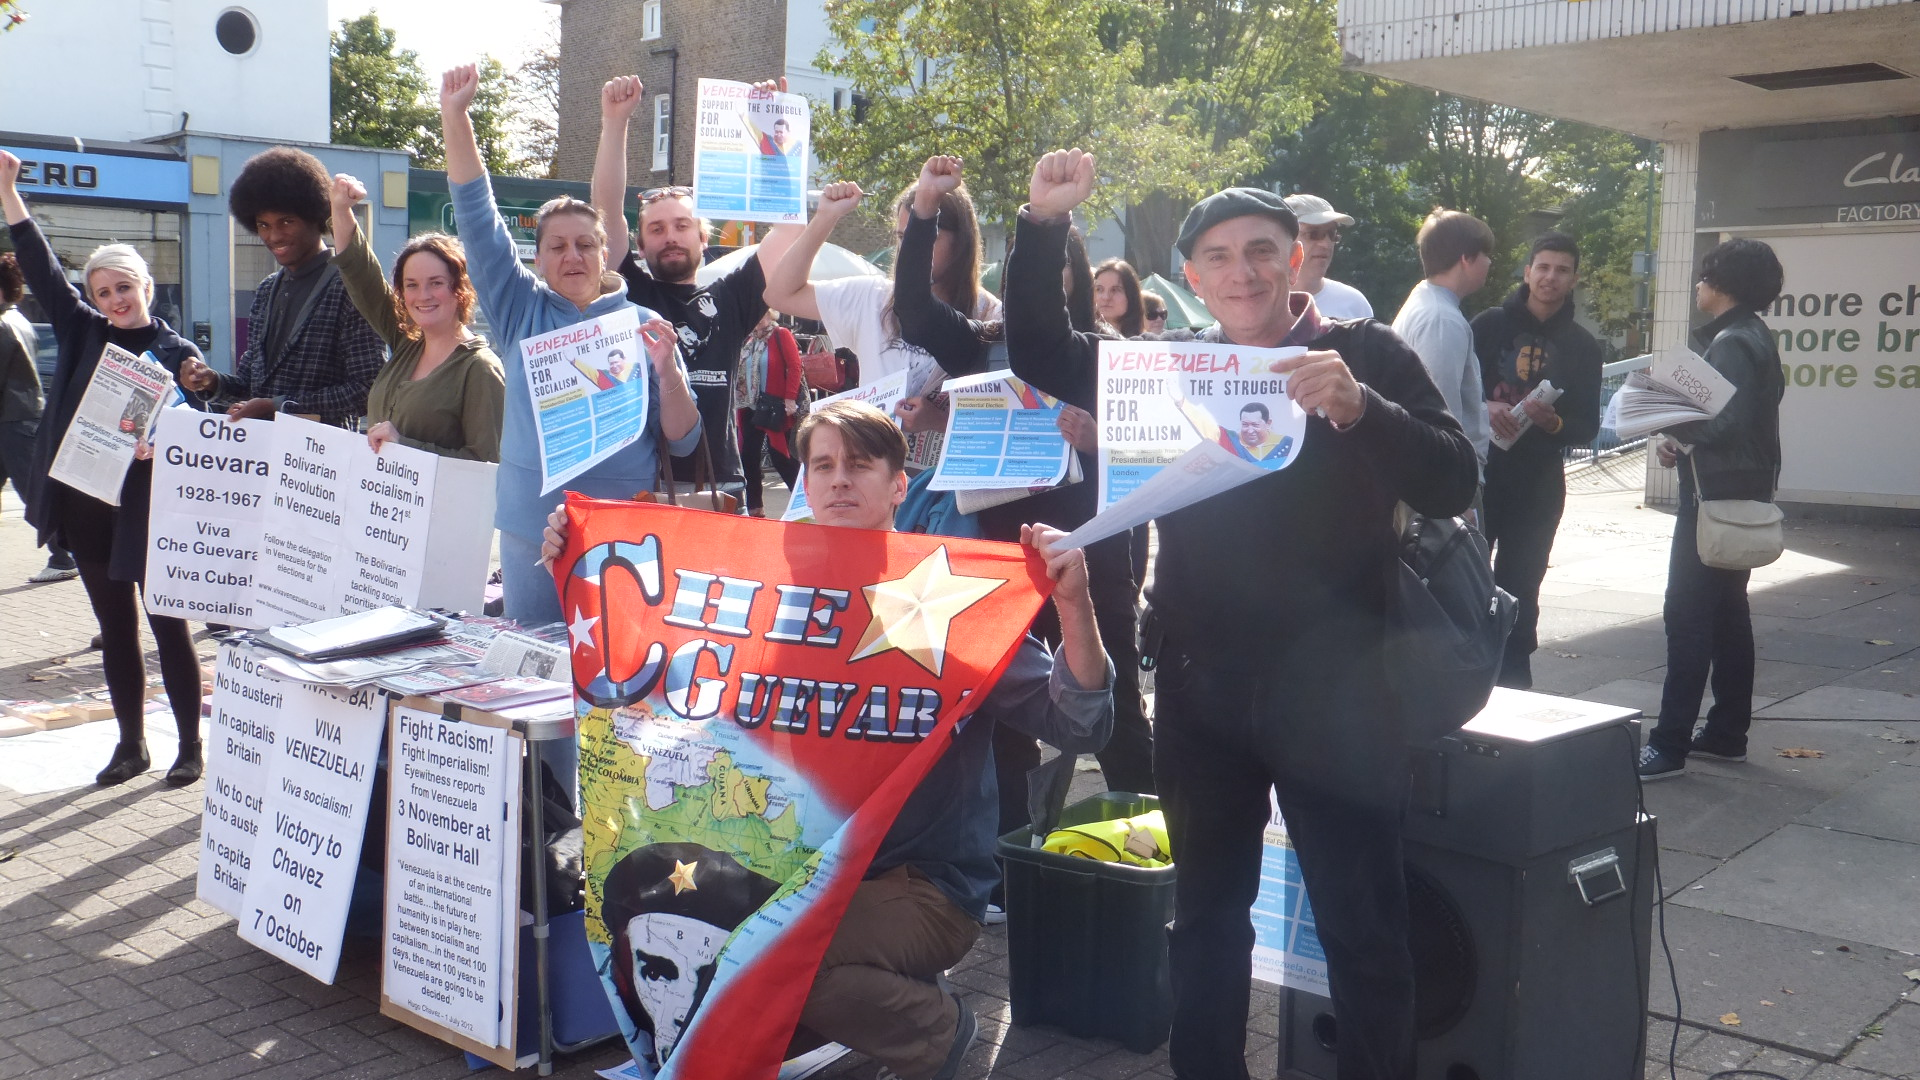 RCG and supporters held a solidarity stall in Kilburn before the Counihan-Sanchez march